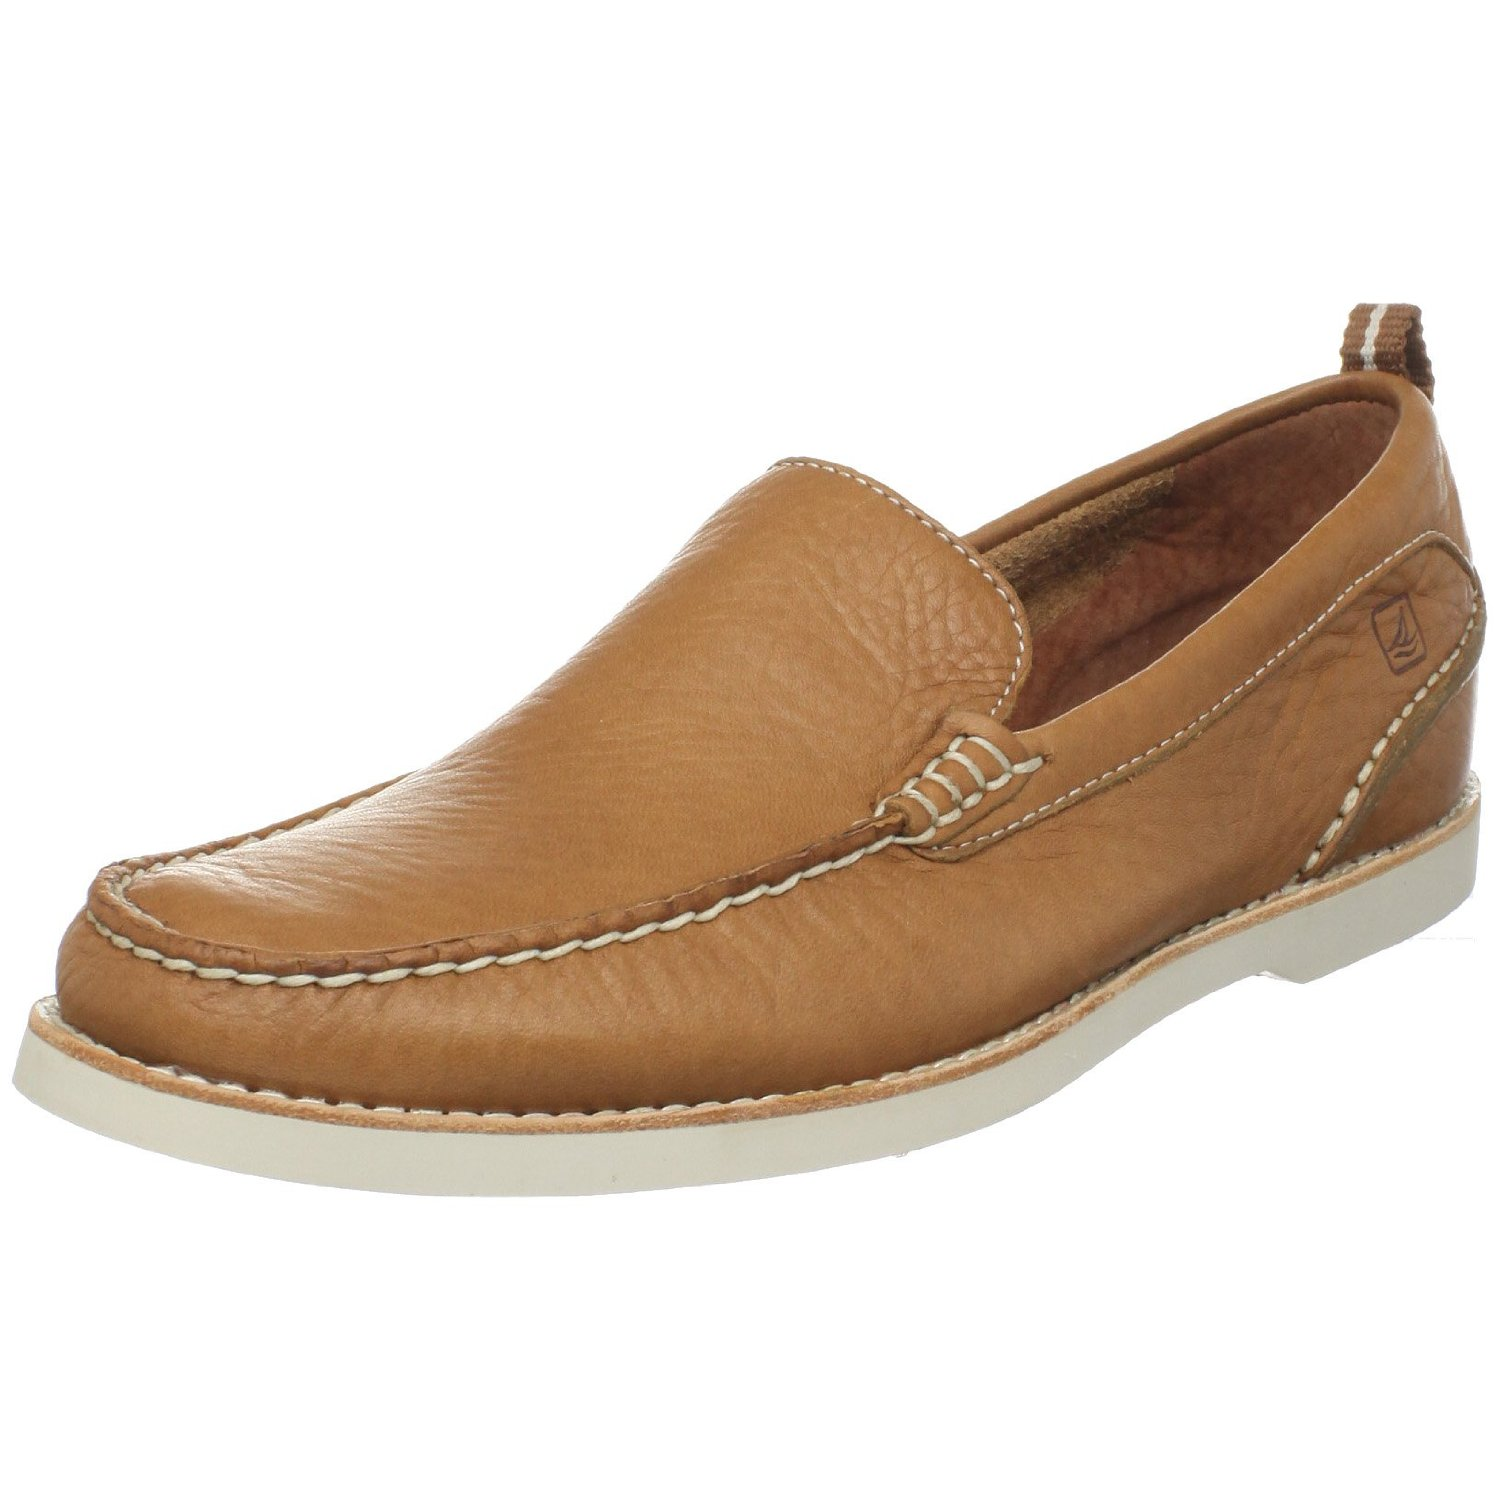 Sperry Top Sider Loafer 28 Images Sperry Top Sider